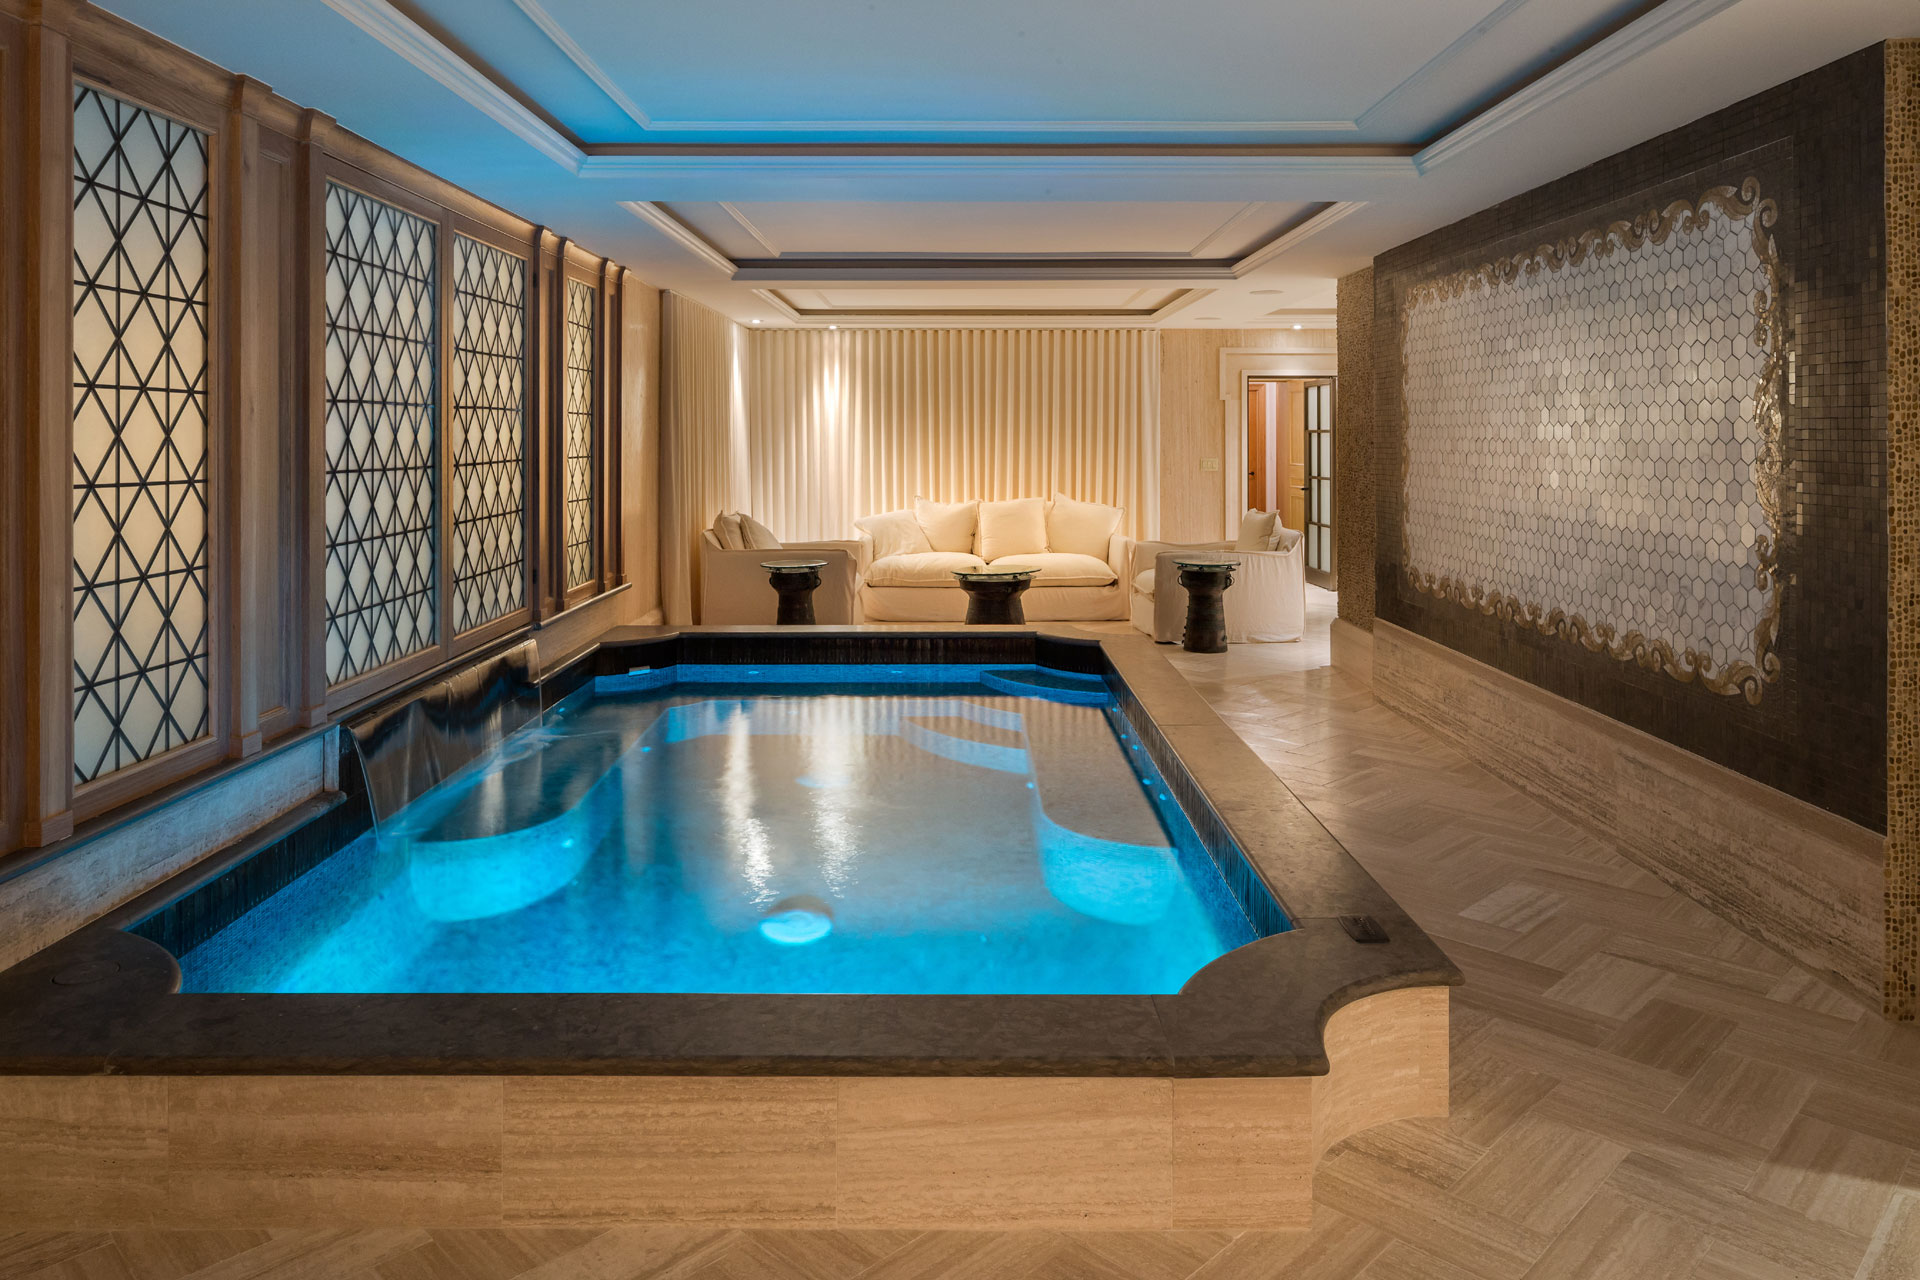 The luxury spa is a sanctuary of seclusion with a lap pool, a relaxation area, a steam room and sauna, a massage room, and a gym.